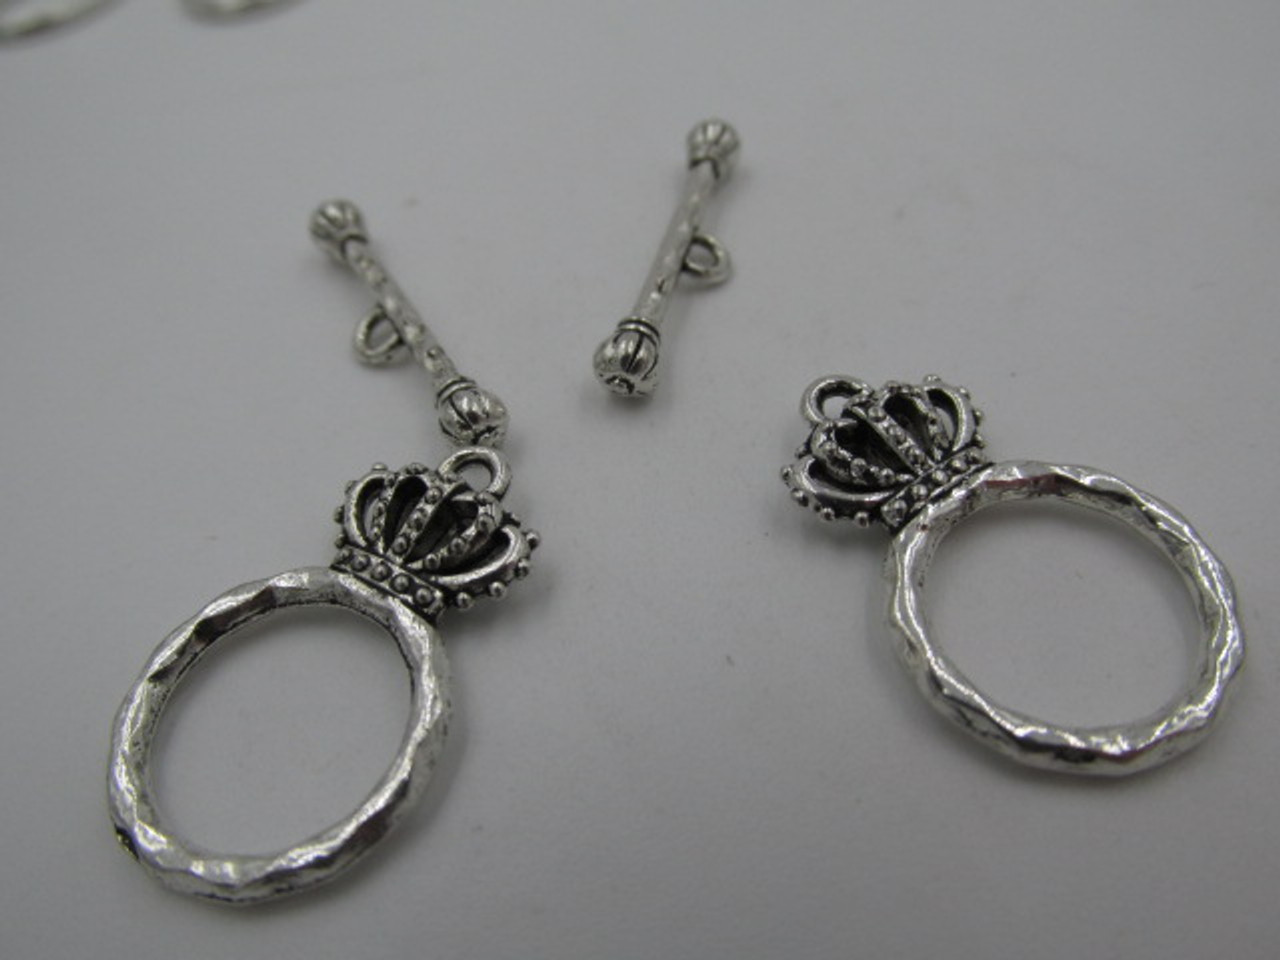 15x4.5mm Crown Silver Plated Toggle (2 Sets)